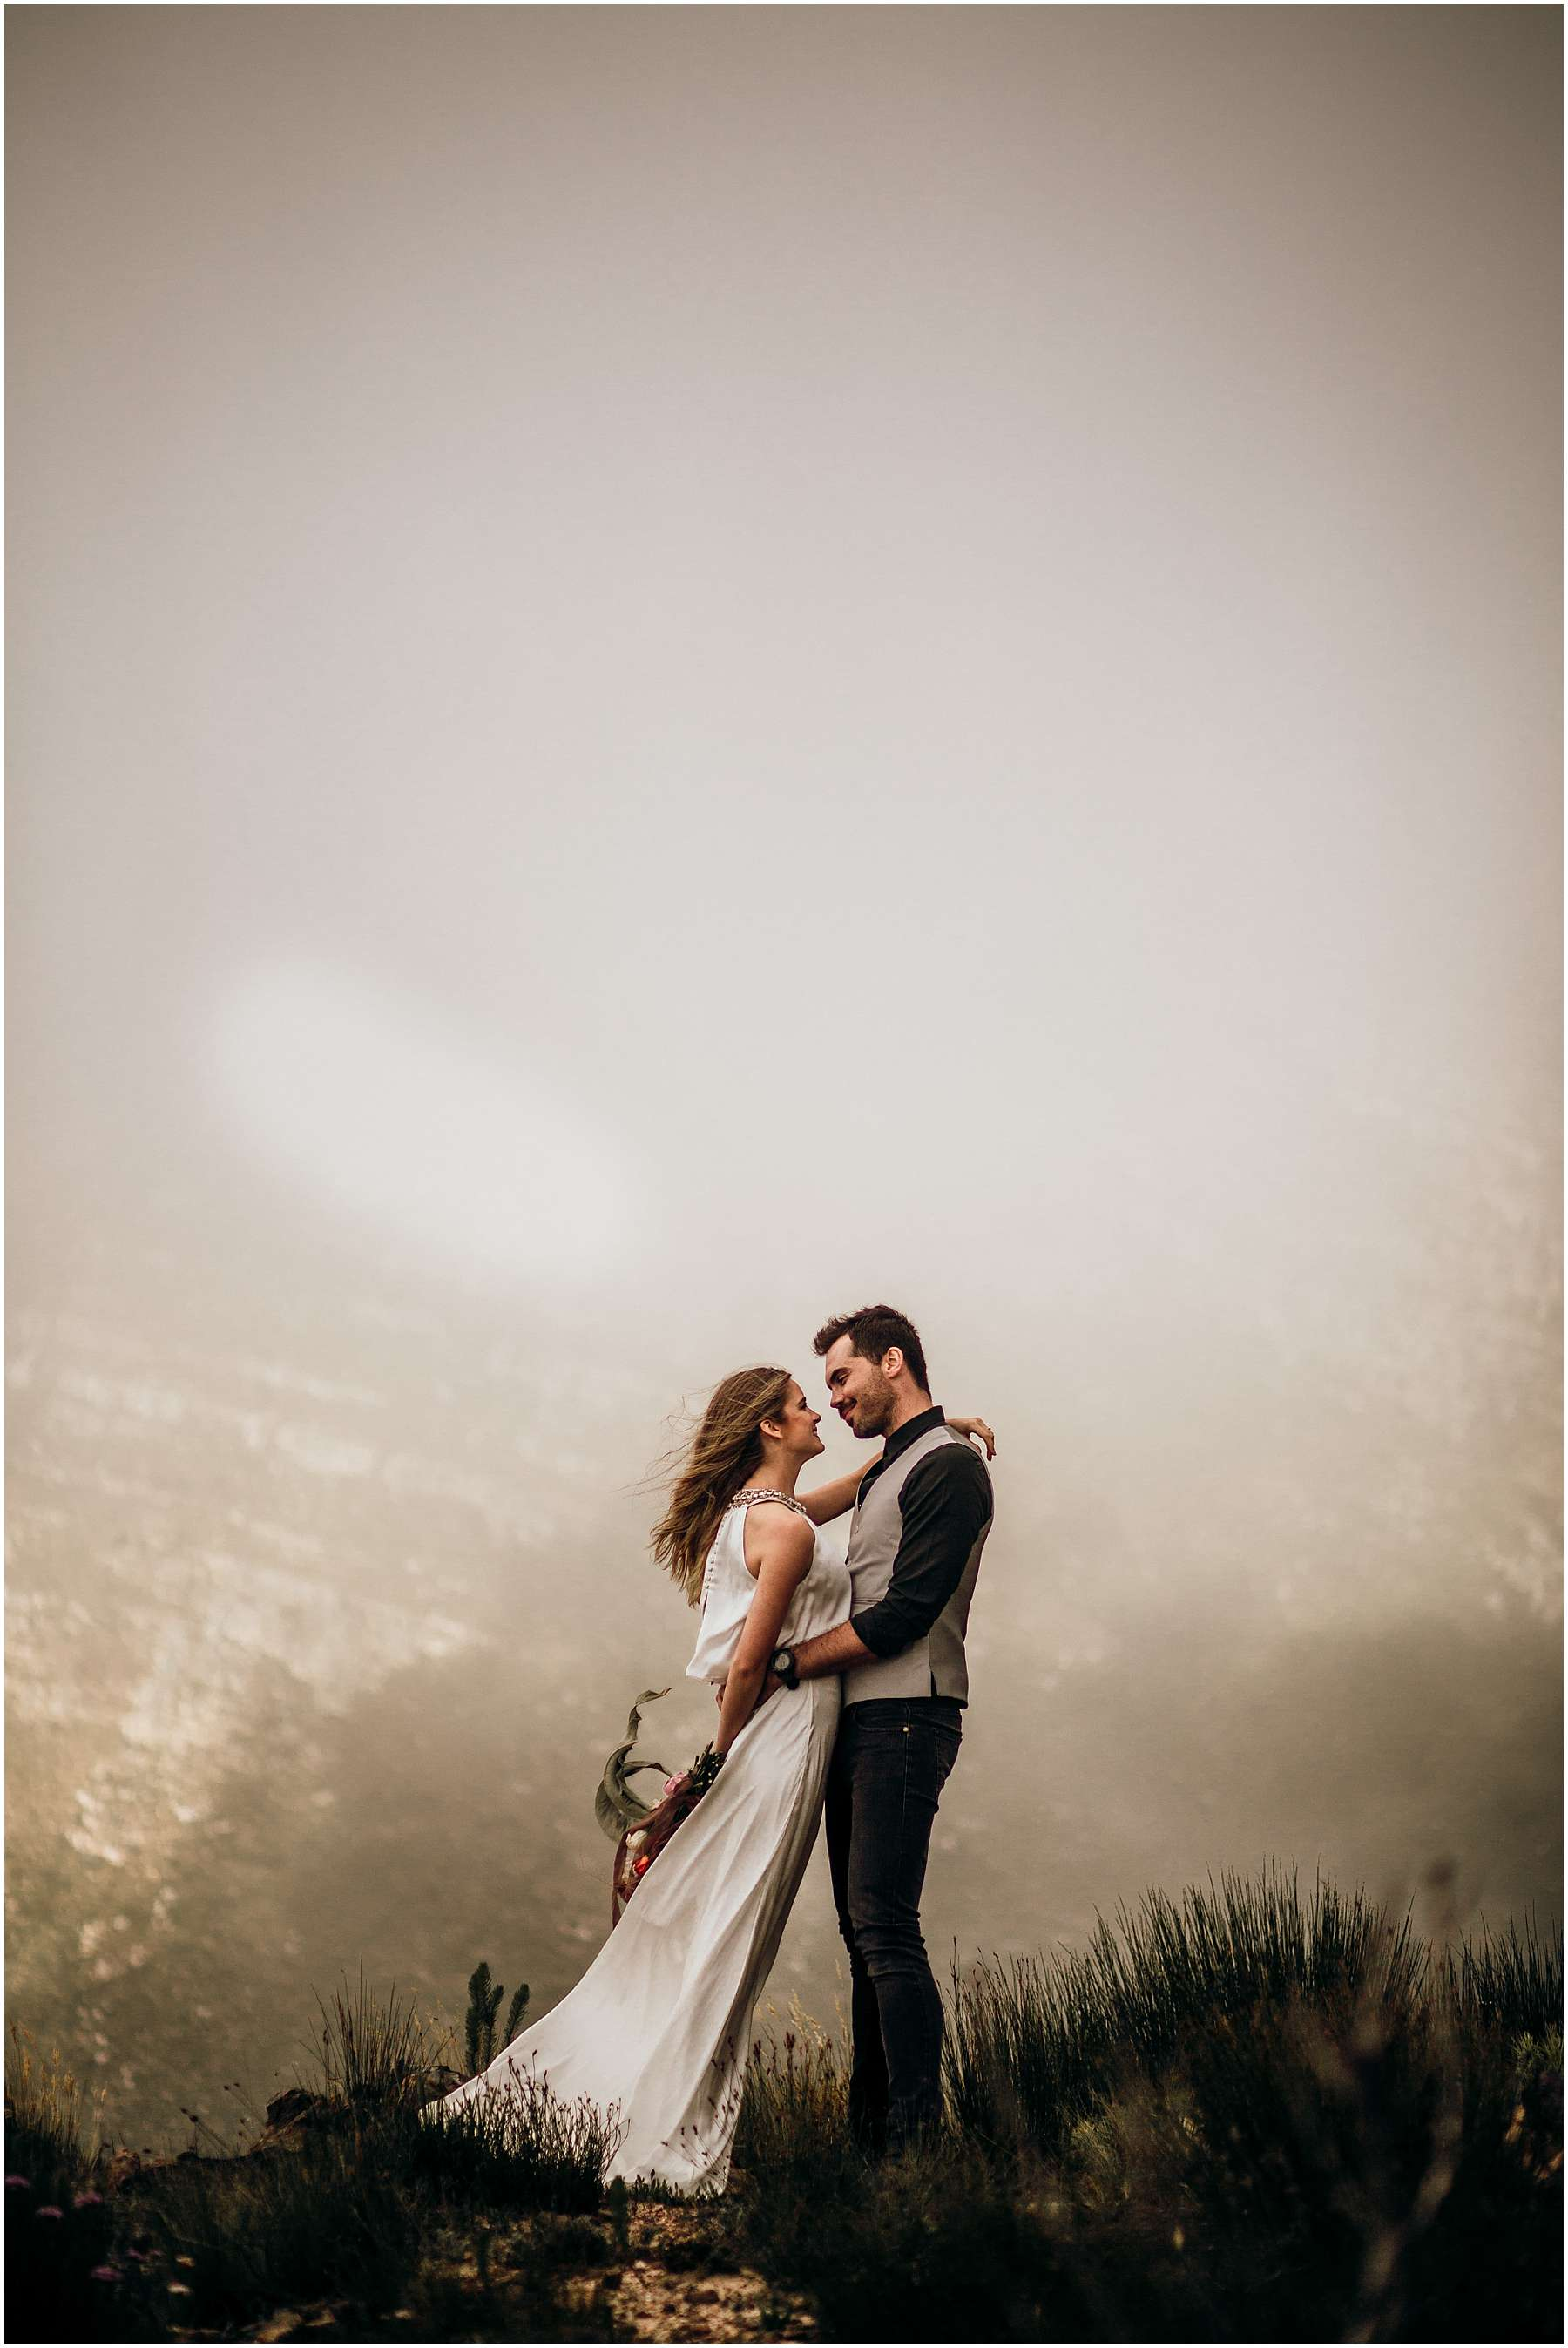 LOTTYH-South-Africa-Cape-Town-Elopement-Photographer_0008.jpg